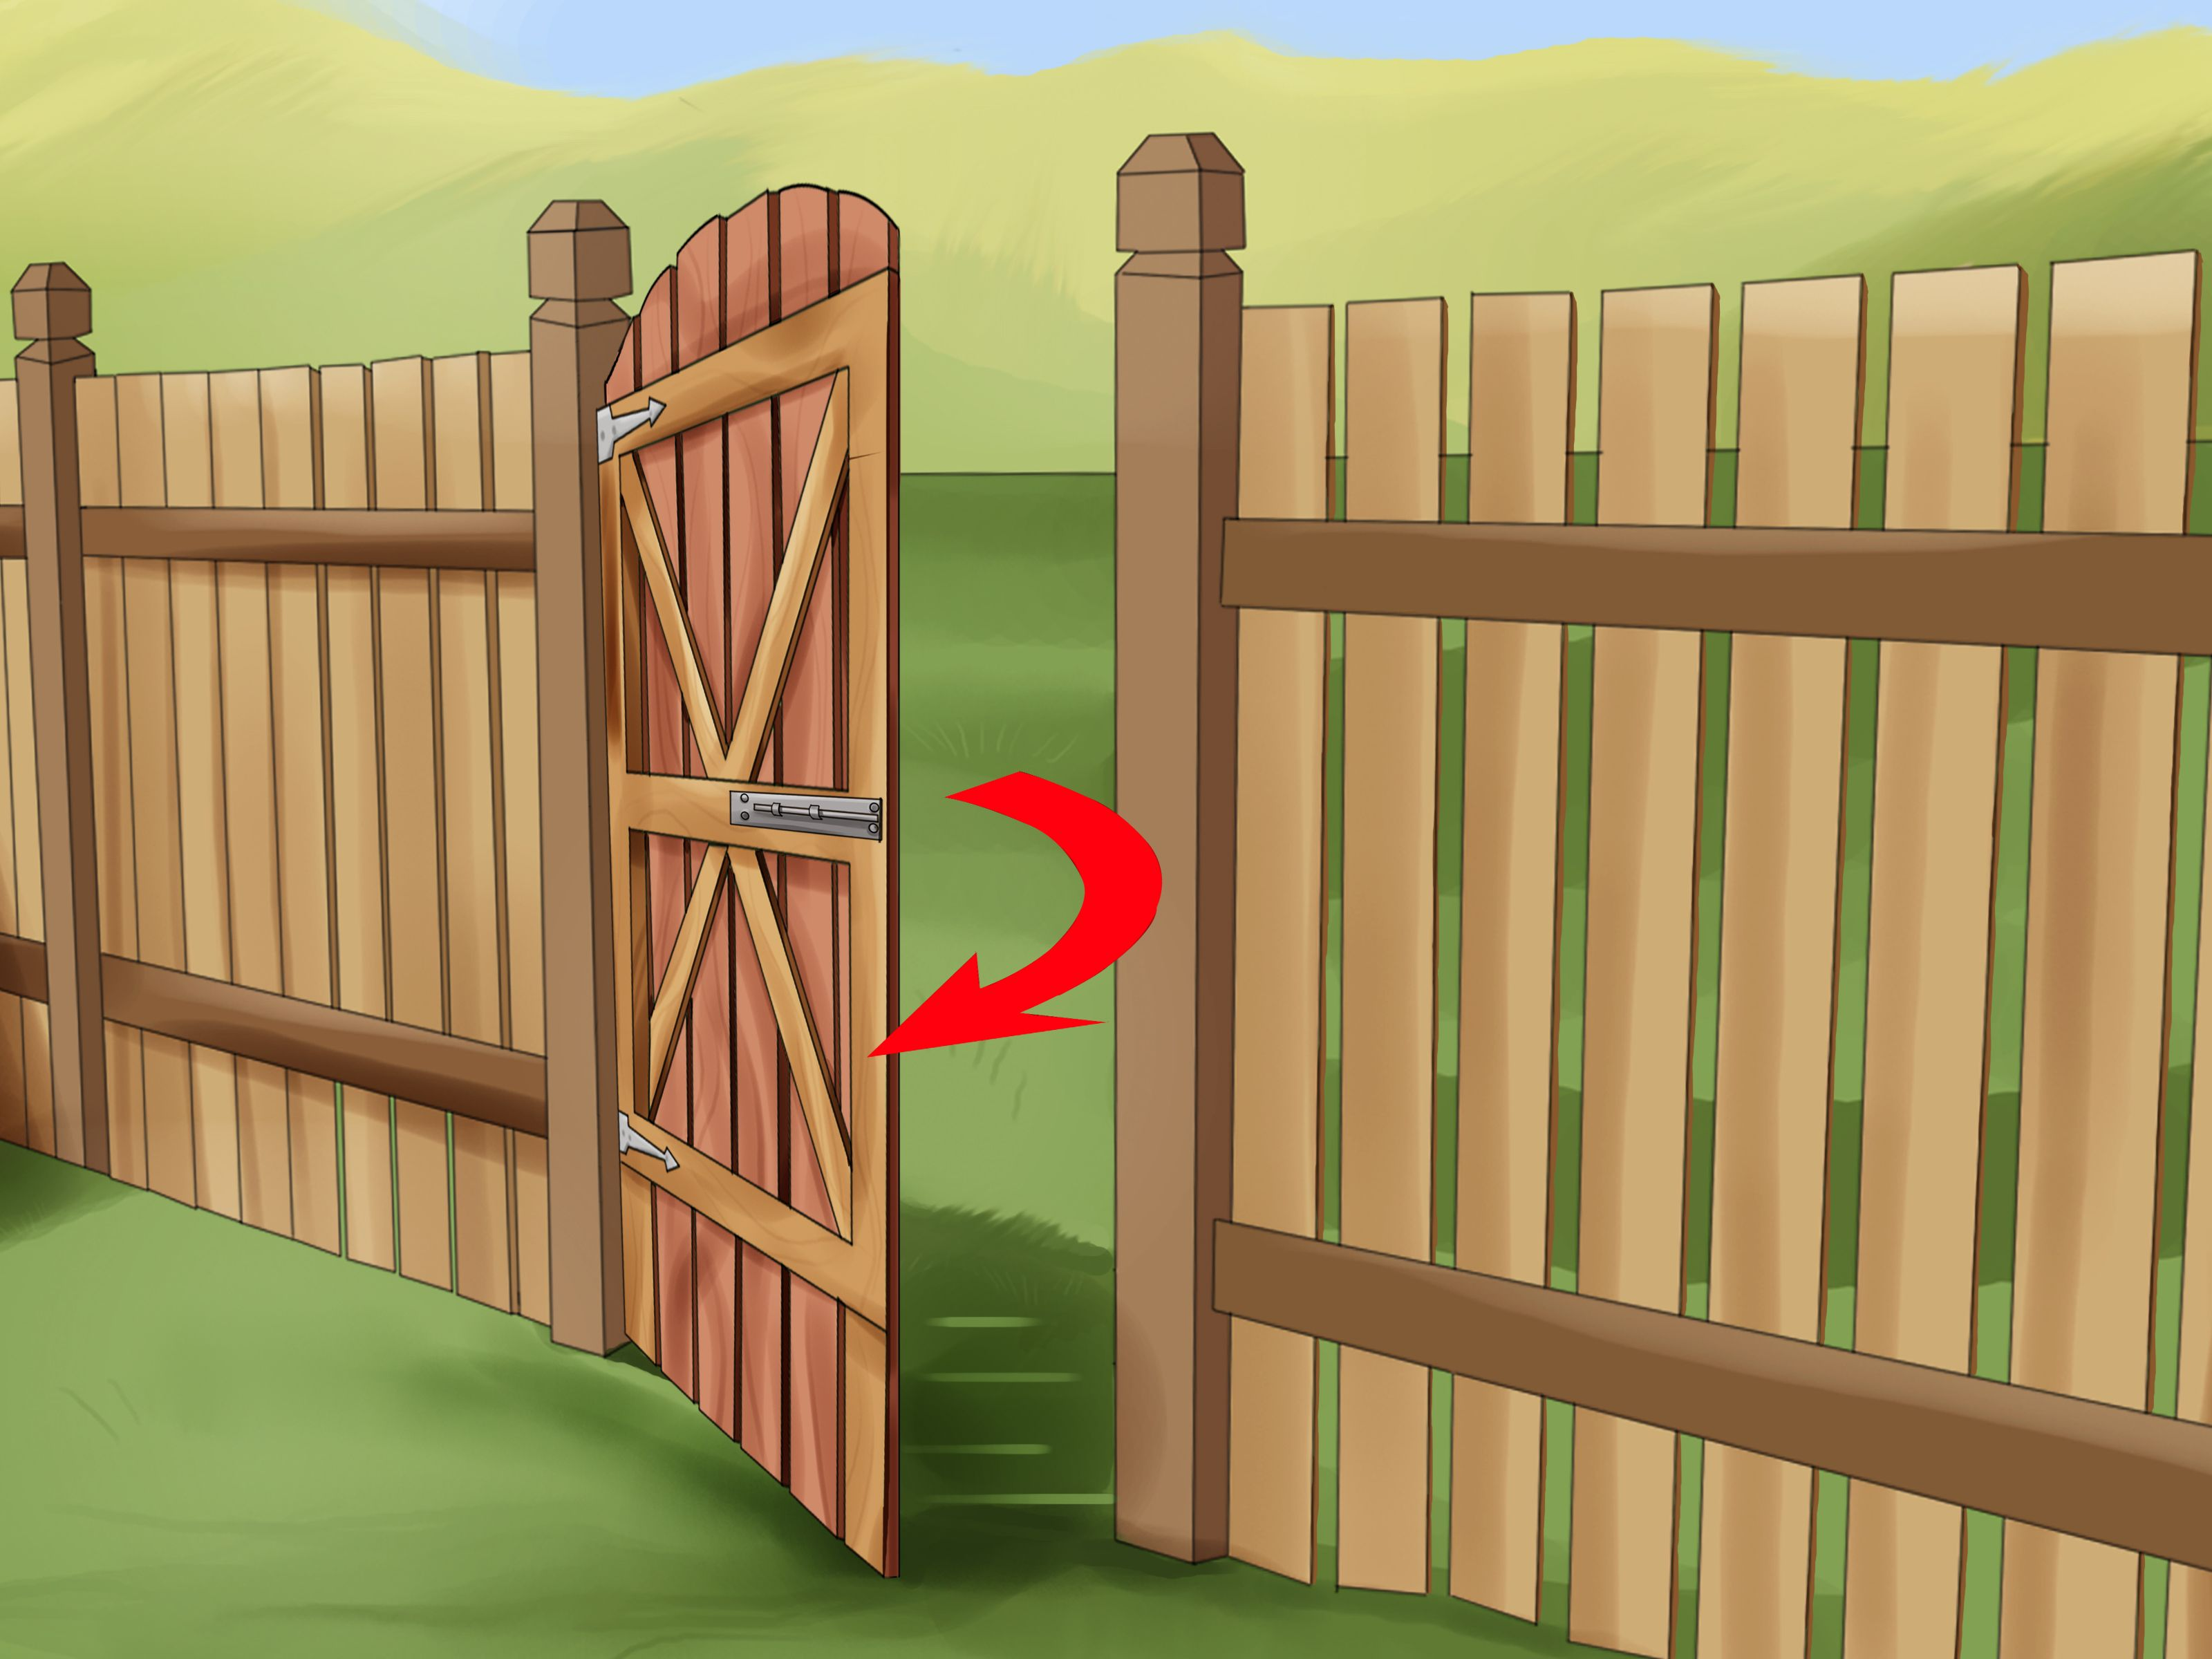 How To Build A Wooden Gate Building A Wooden Gate Wooden Fence Gate Wood Fence Gates